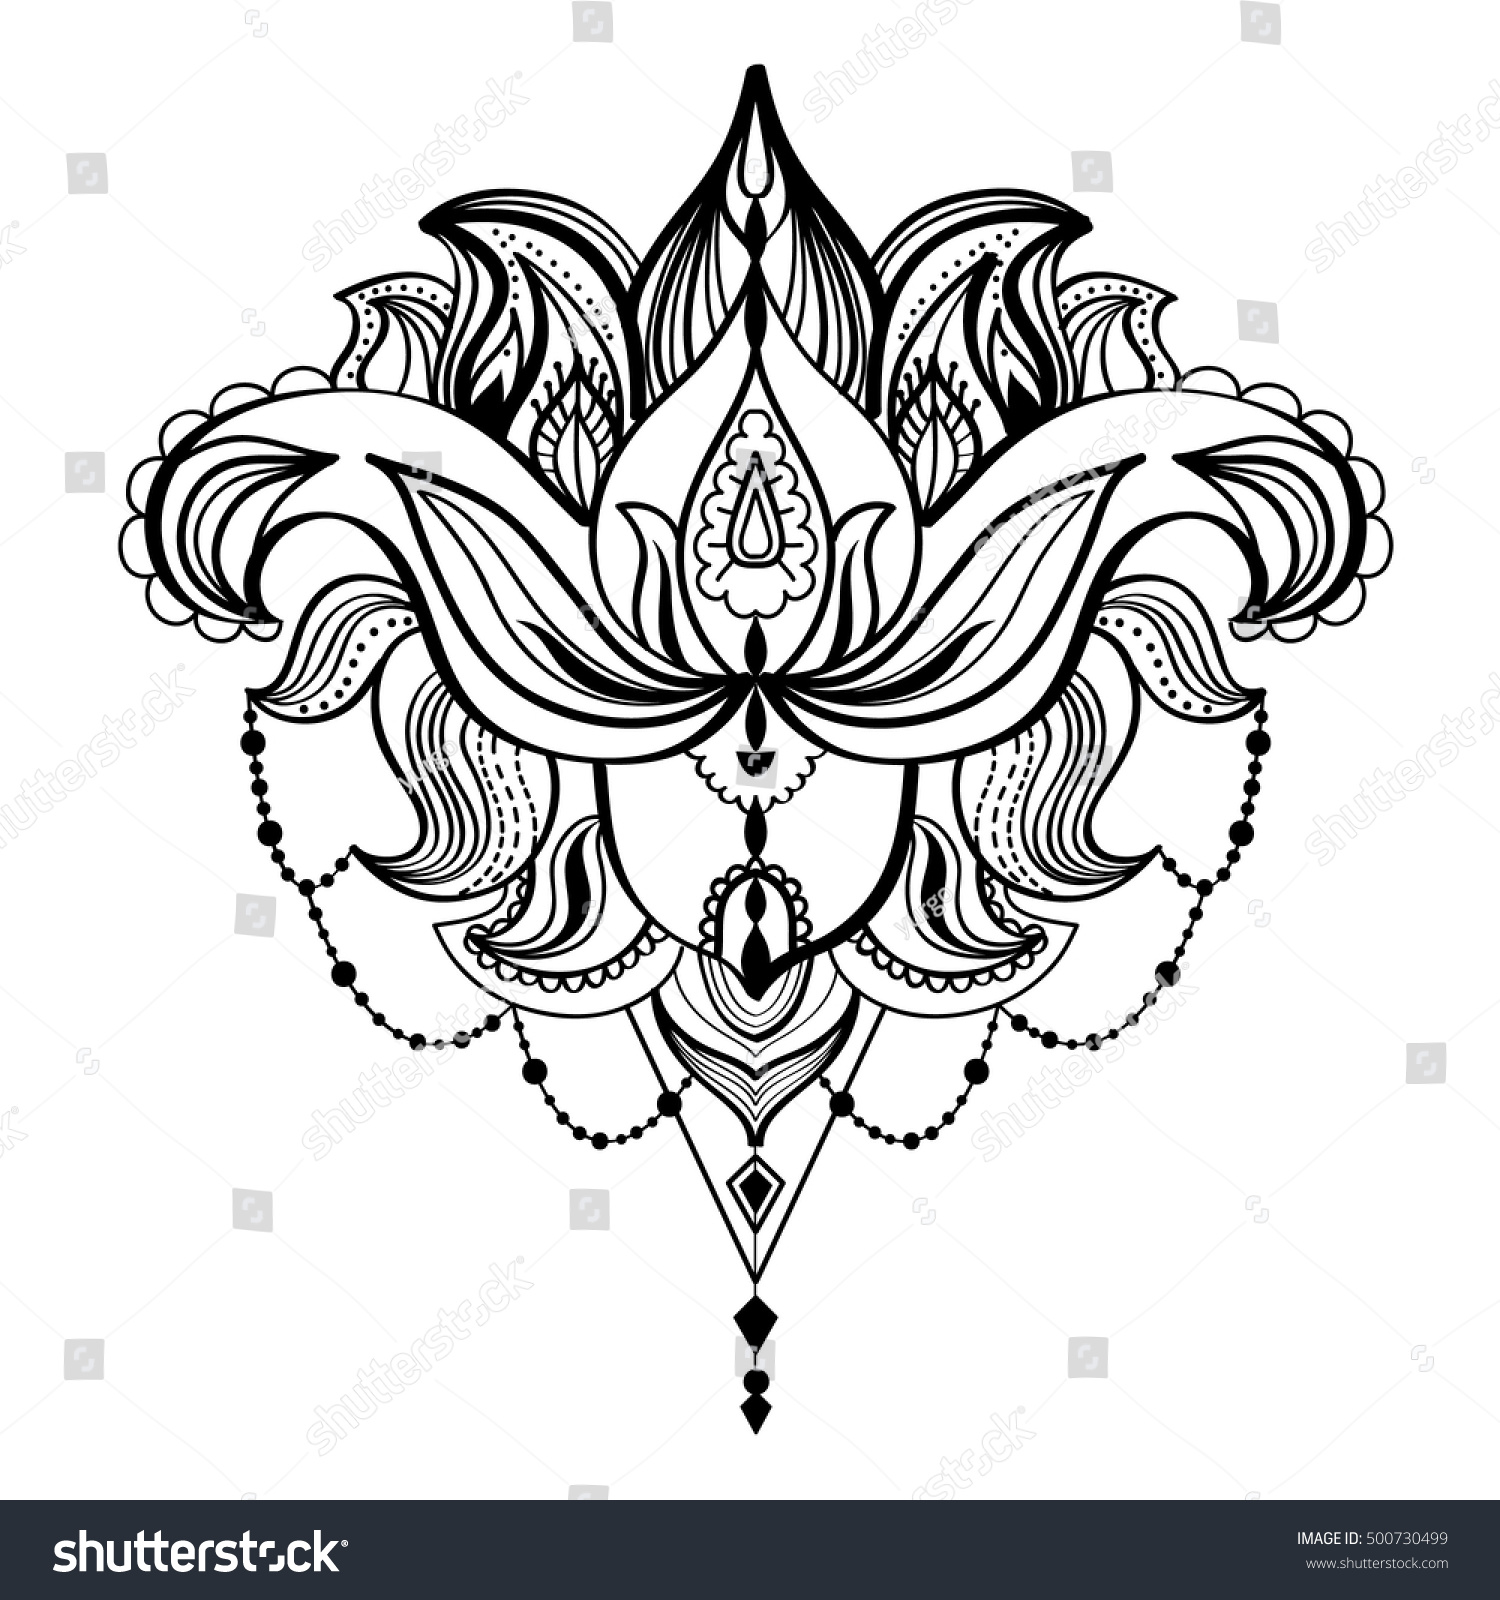 Black white sketch drawing lotus flower stock vector royalty free black and white sketch drawing of a lotus flower adult coloring book vintage bohemian izmirmasajfo